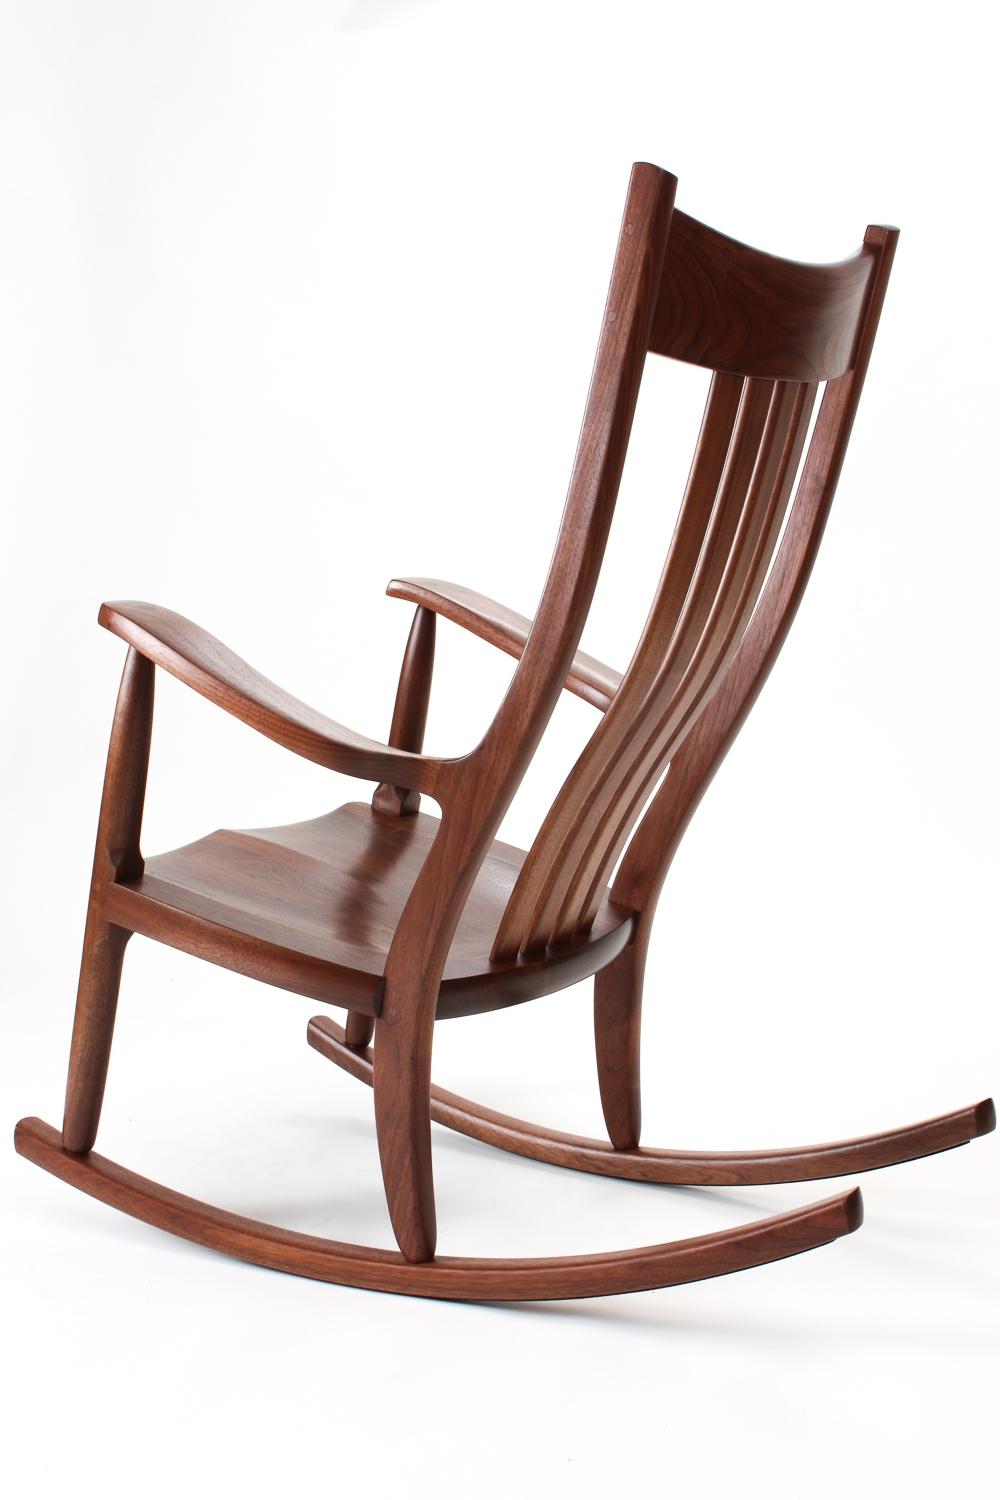 Inspiration about Walnut Rocking Chairs | Comfortable, Handmade, Heirloom Intended For Dark Walnut Brown Wooden Rocking Chairs (#5 of 20)